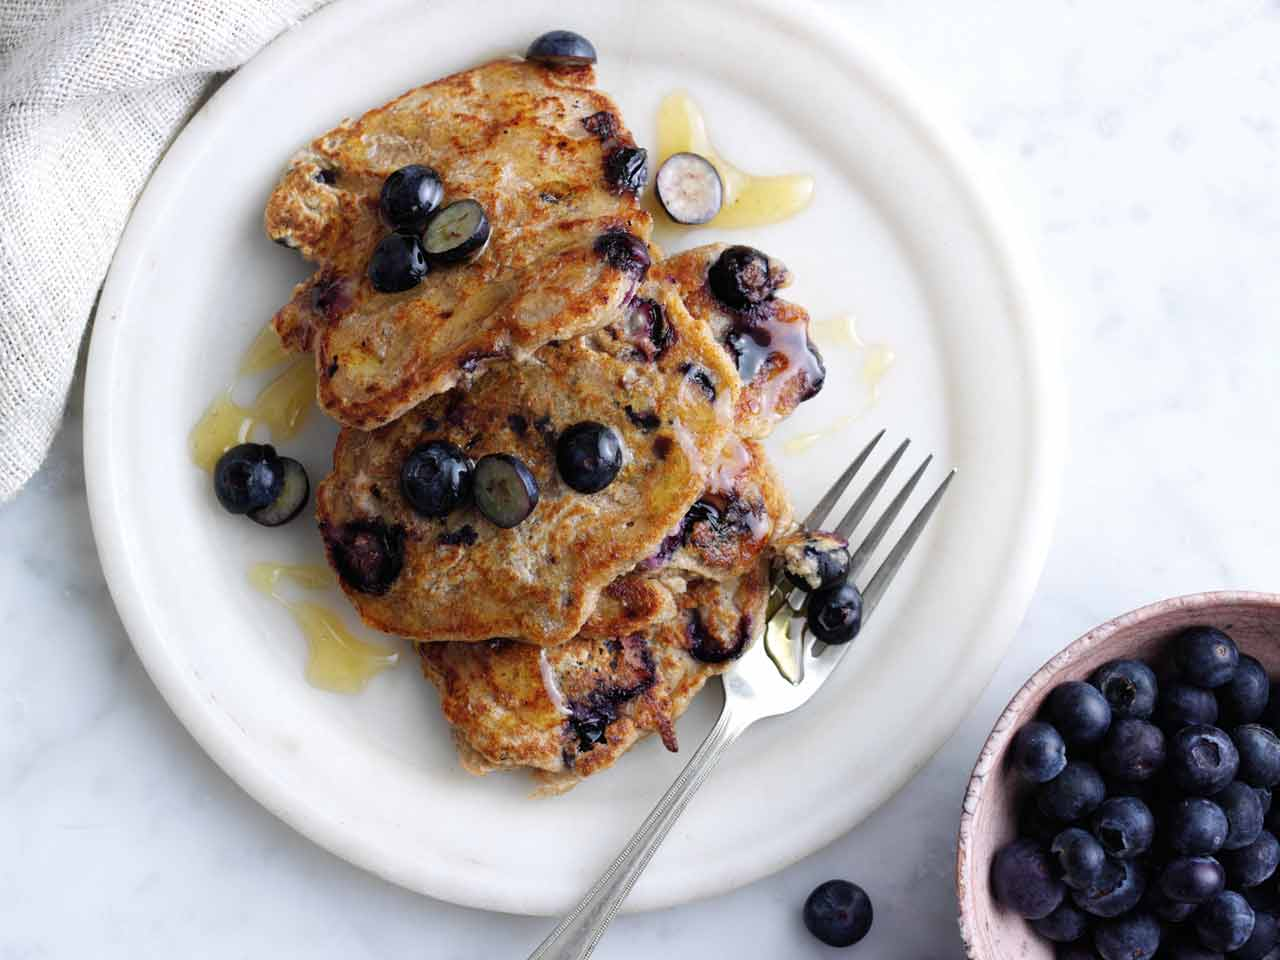 Vegan pancakes with oats and blueberries